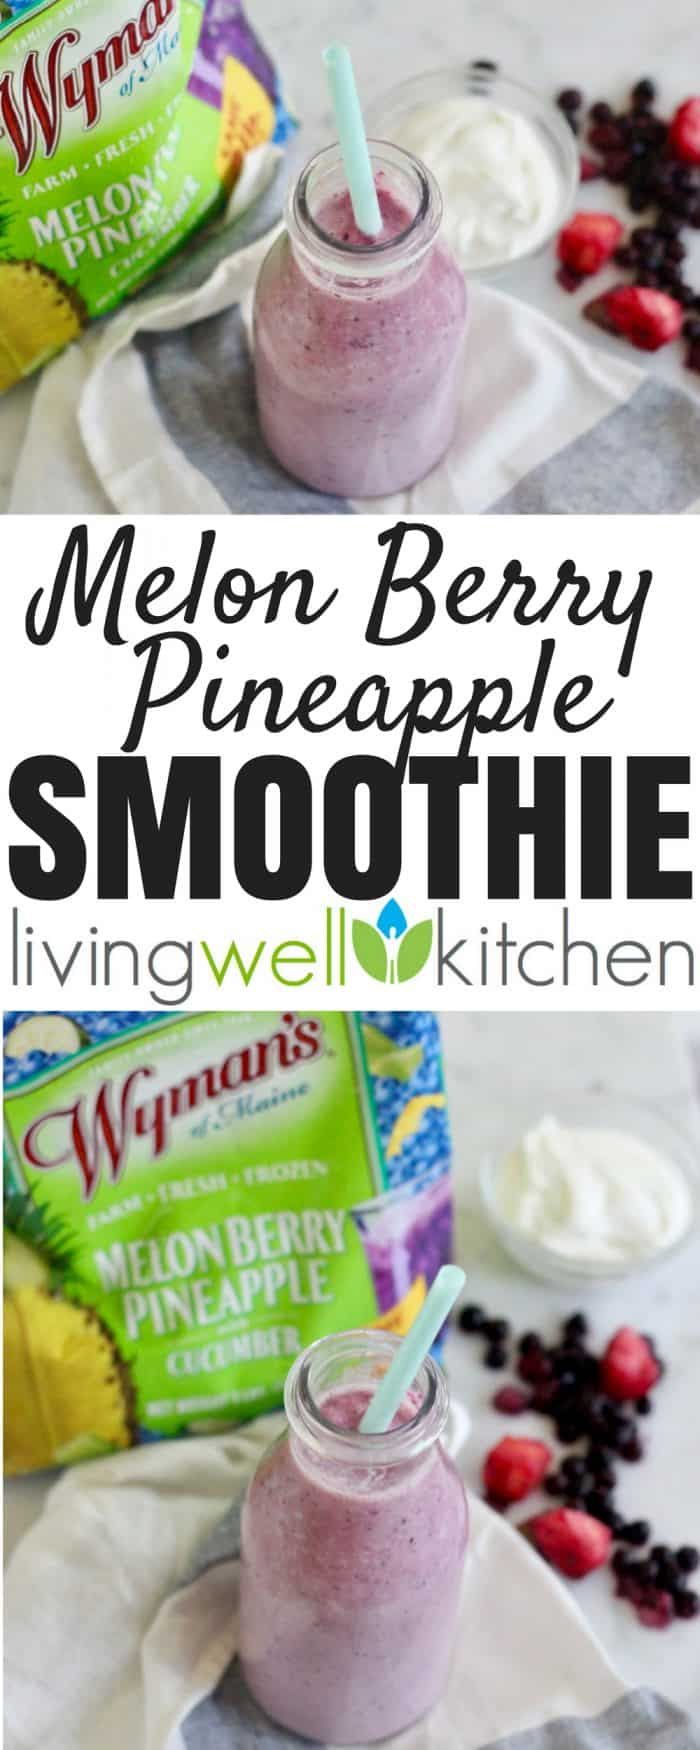 You need three ingredients and less than three minutes to make these refreshingly scrumptious smoothies thanks to the Wyman's Melon Berry Pineapple with Cucumber smoothie blend. Melon Berry Pineapple Smoothie recipe from @memeinge is gluten free and can be dairy free and vegan.